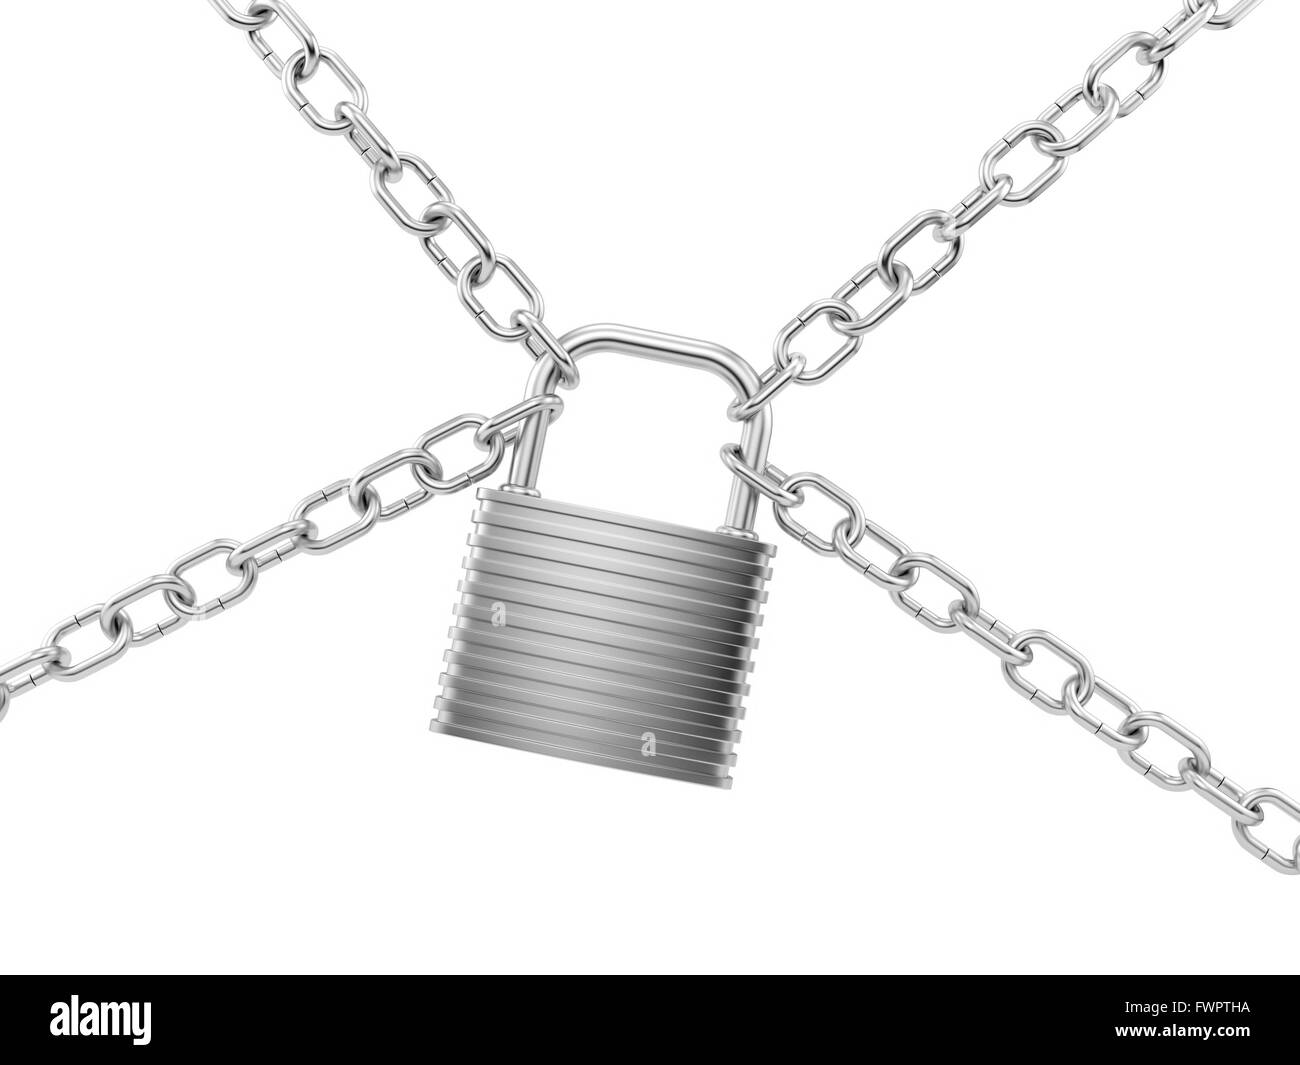 render of a silver lock with chains, isolated  on white Stock Photo